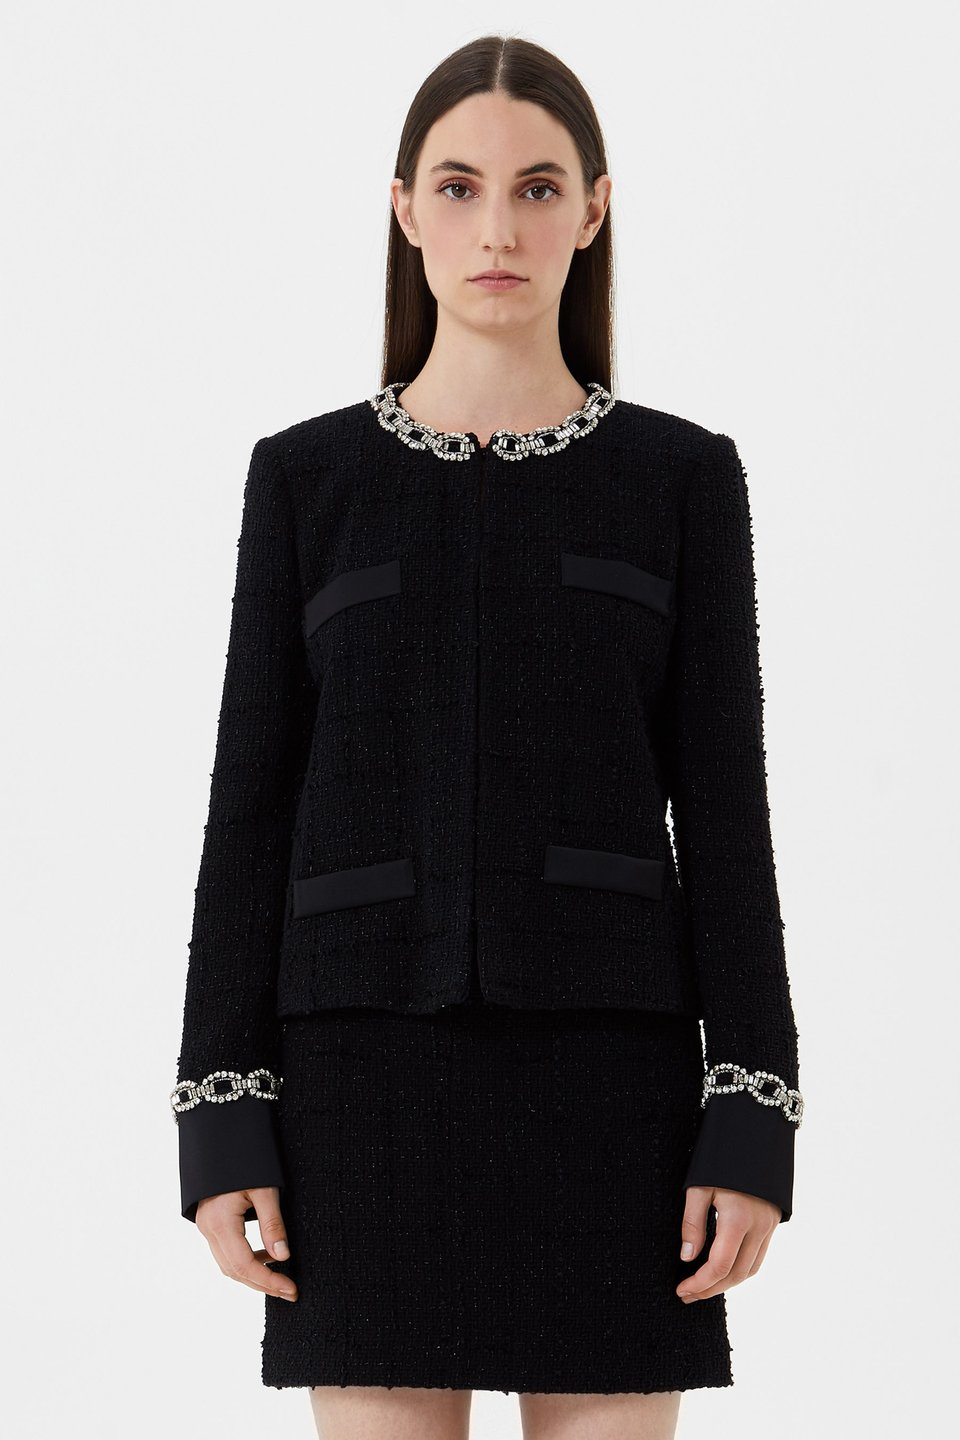 Bouclé jacket with rhinestone embroidery